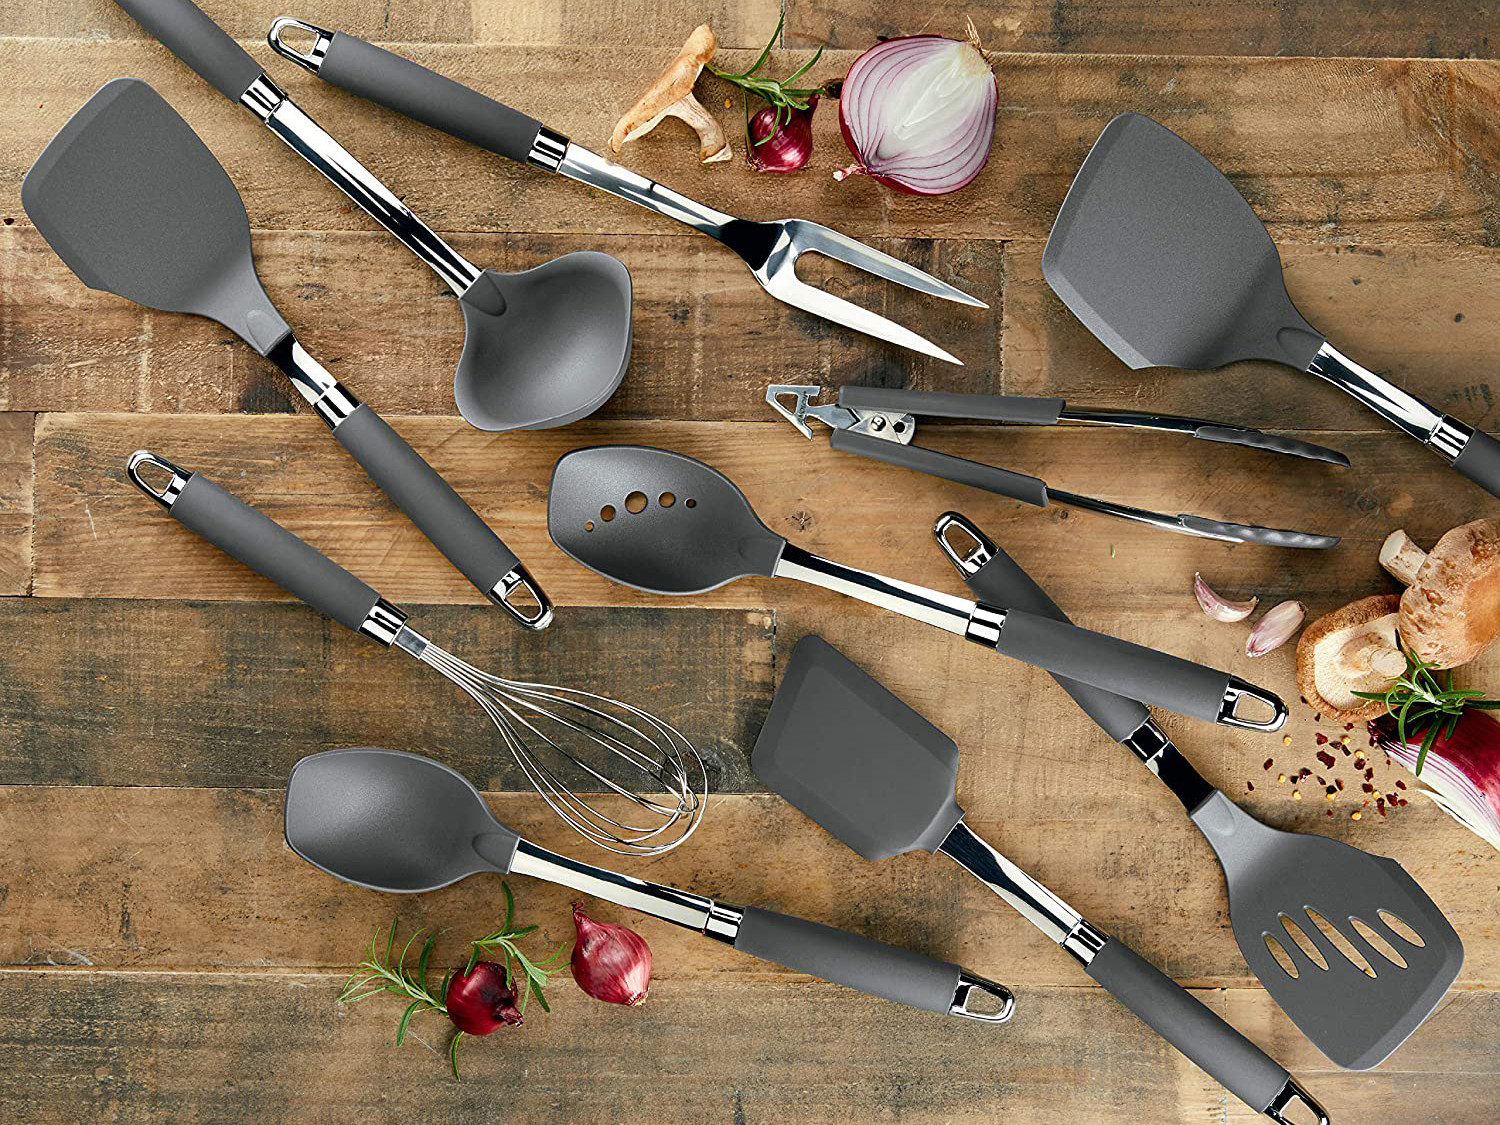 The 14 Best Utensil Sets For Cooking Baking In 2021 According To Reviews Food Wine